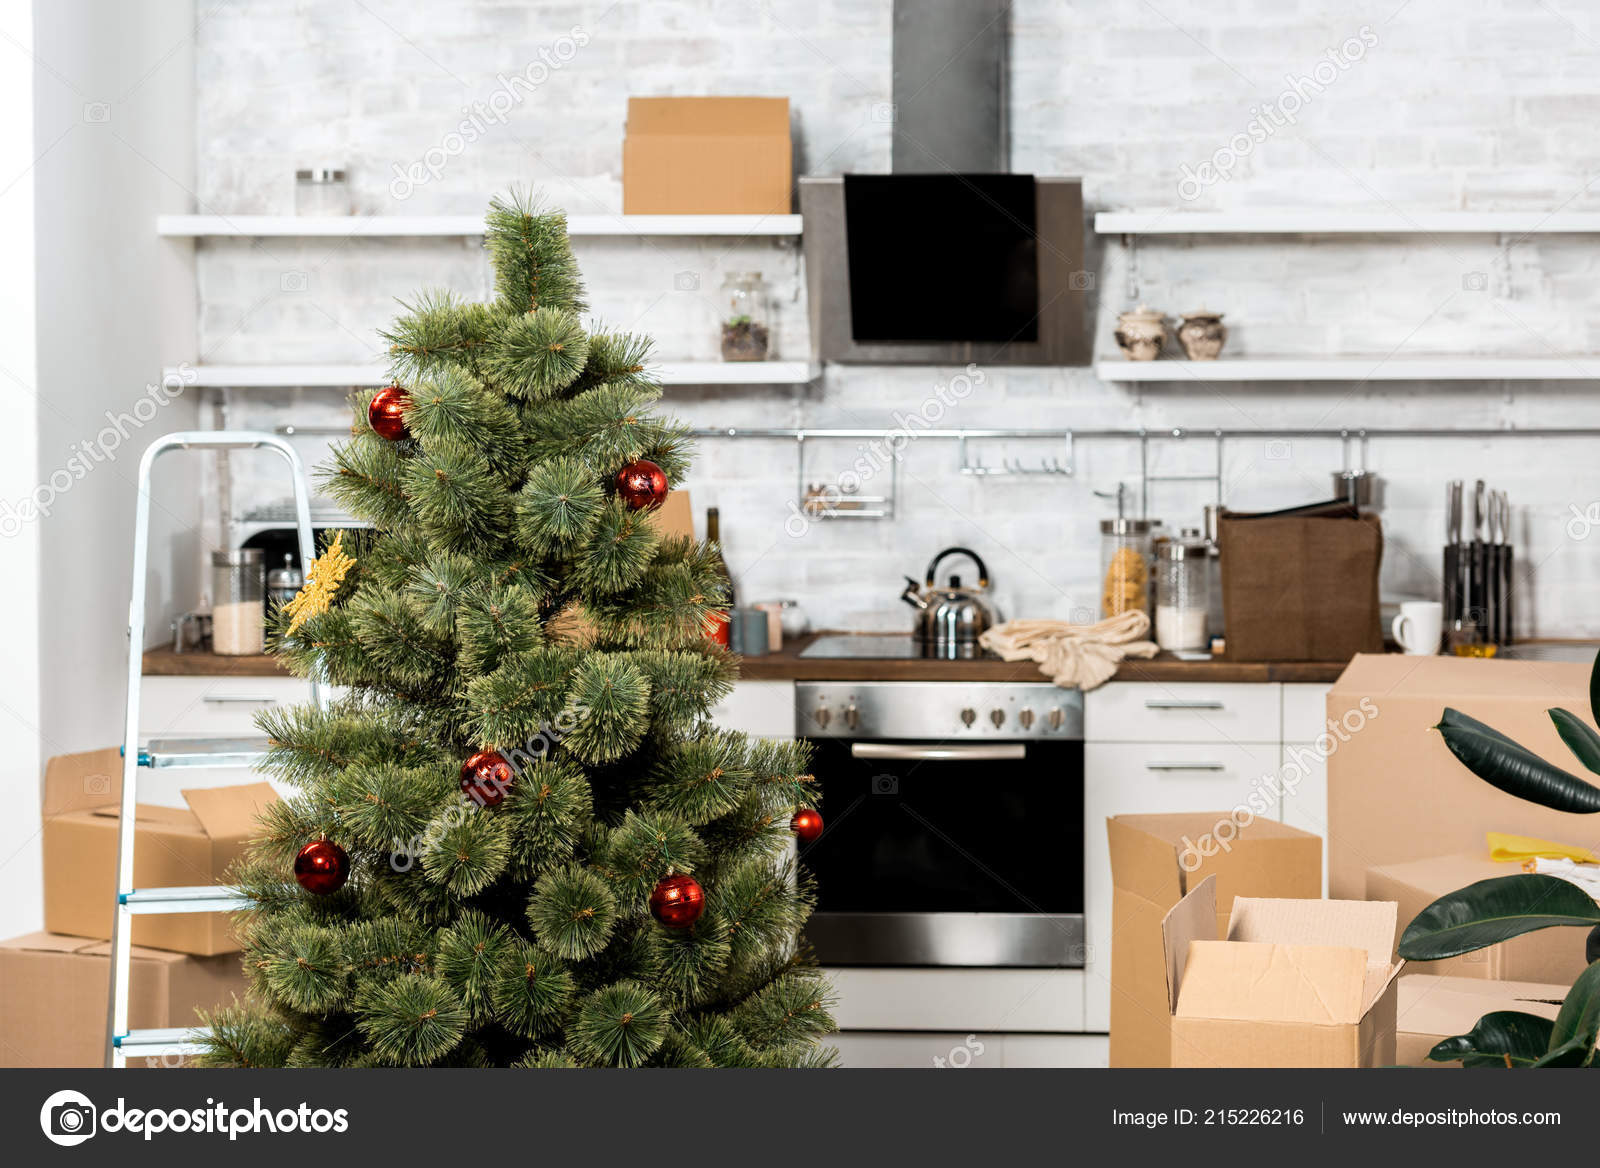 Interior Kitchen Decorated Christmas Tree Cardboard Boxes Relocation ...